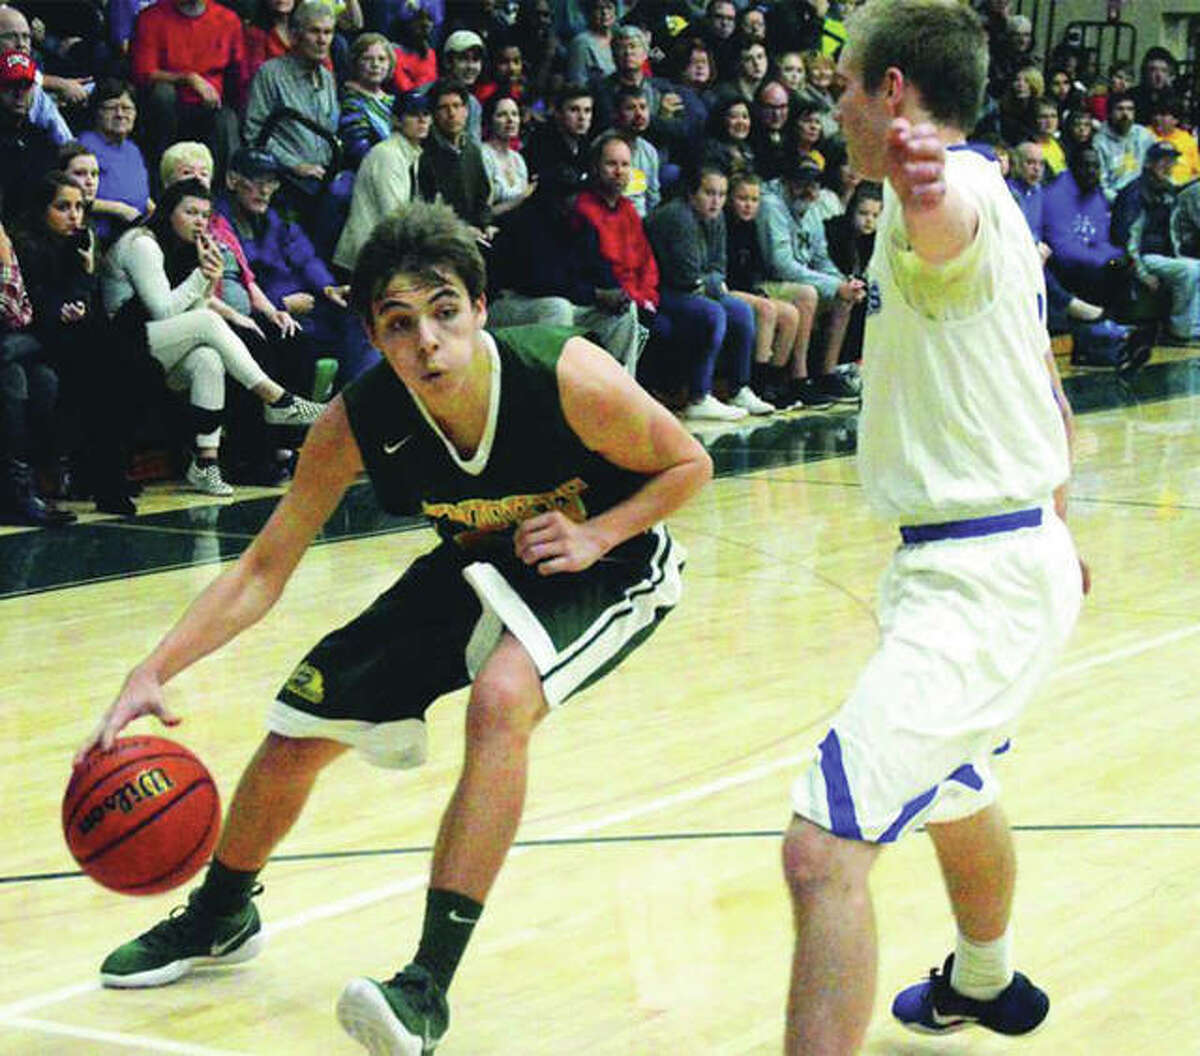 Metro-East Lutheran's Jonah Odgen (left) is cut off by Marquette Catholic's Sammy Green during the title game of the MEL Thanksgiving tourney No. 25 at Hooks Gym in Edwardsville. The teams met again Tuesday night in Alton, with Marquette again defeating MEL to keep the Explorers unbeaten at 7-0.